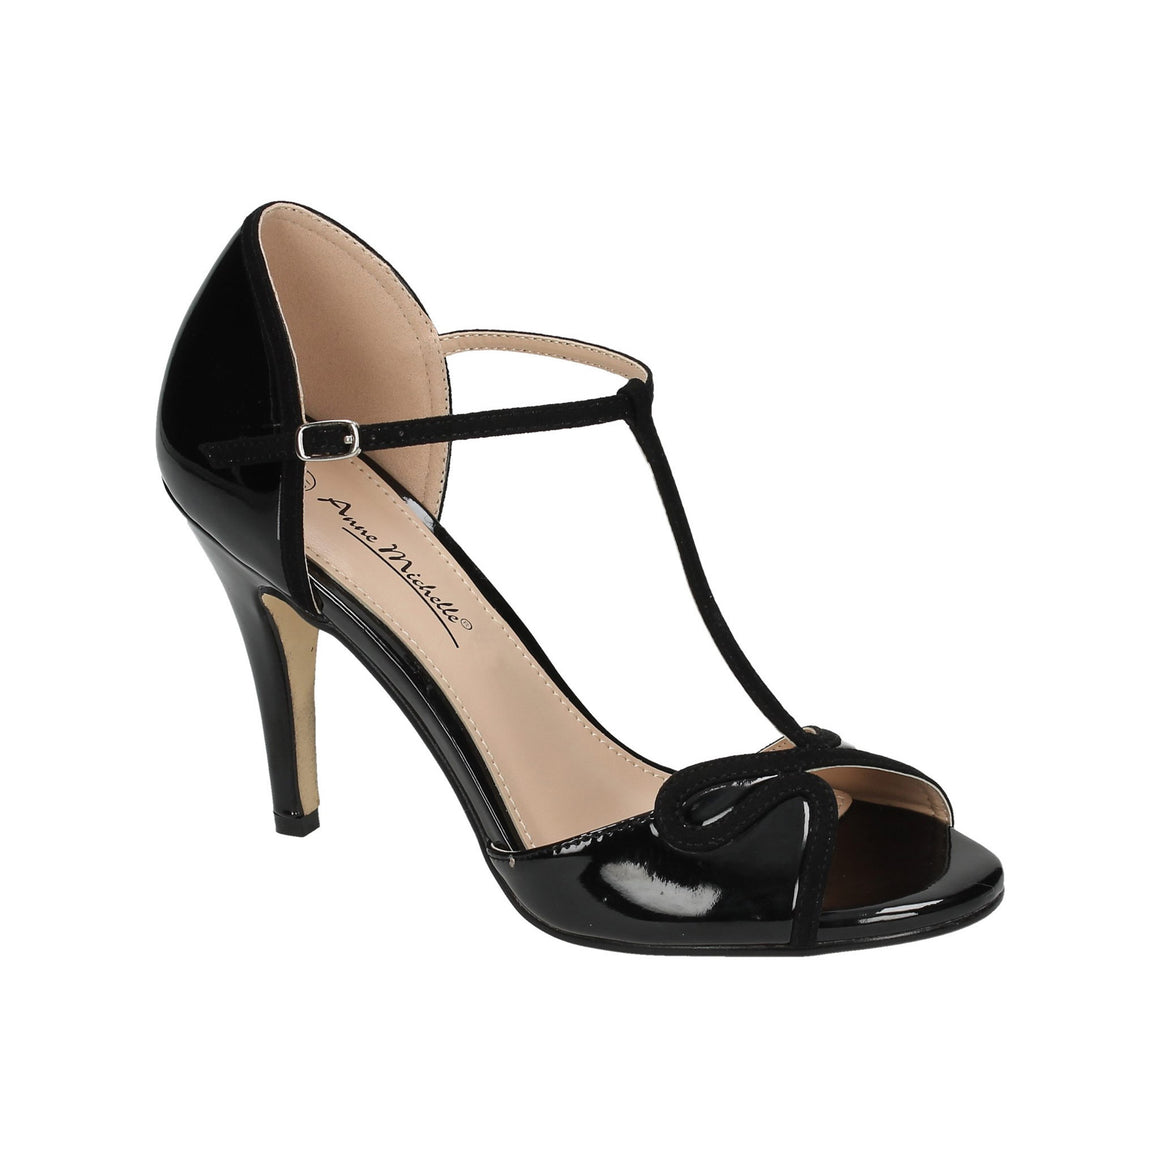 Black T-Bar Open Toe Heel Sandals